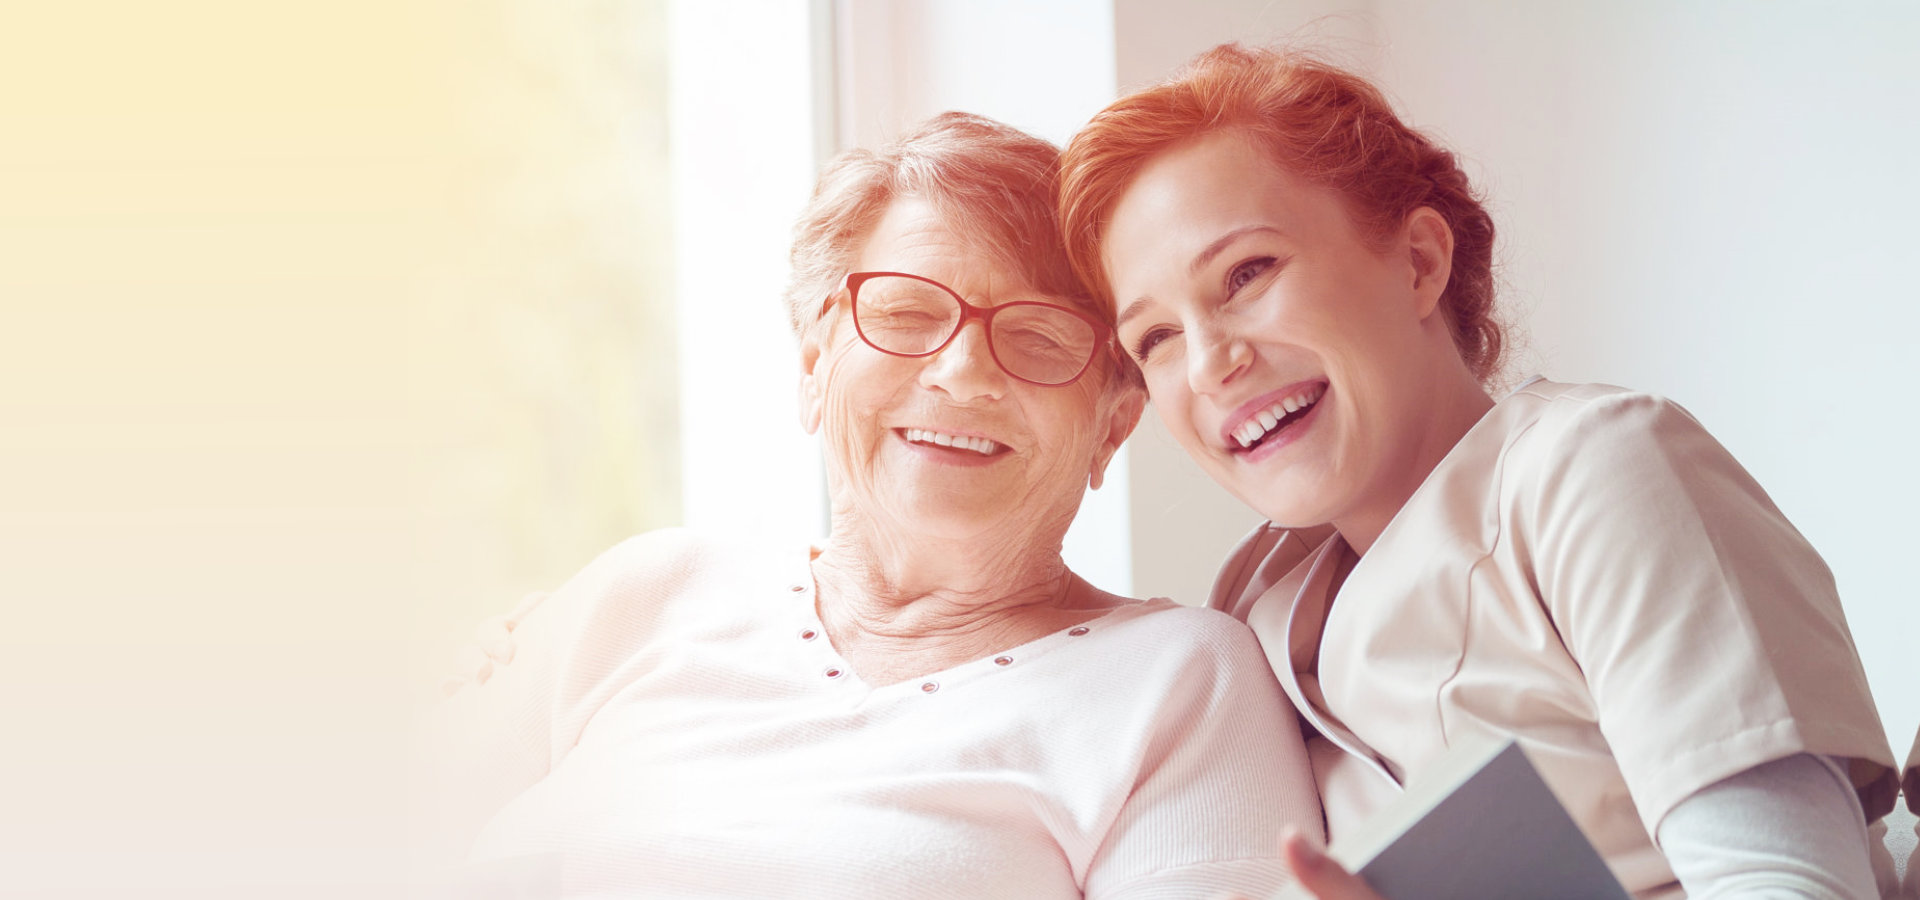 caregiver and elderly patient are smiling